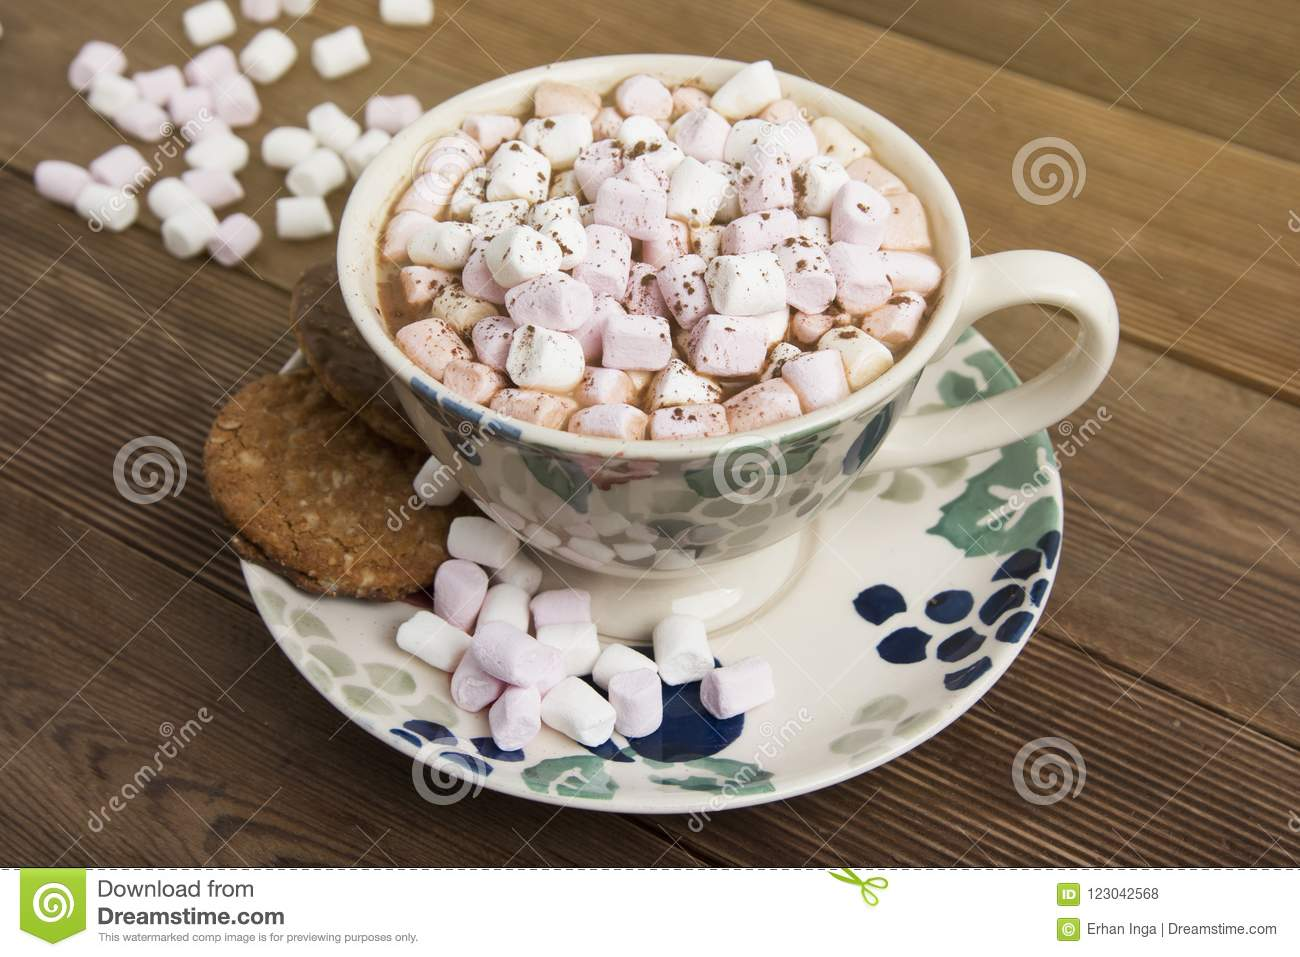 Beautiful Vintage Cup Of Homemade Hot Chocolate Or Cocoa With